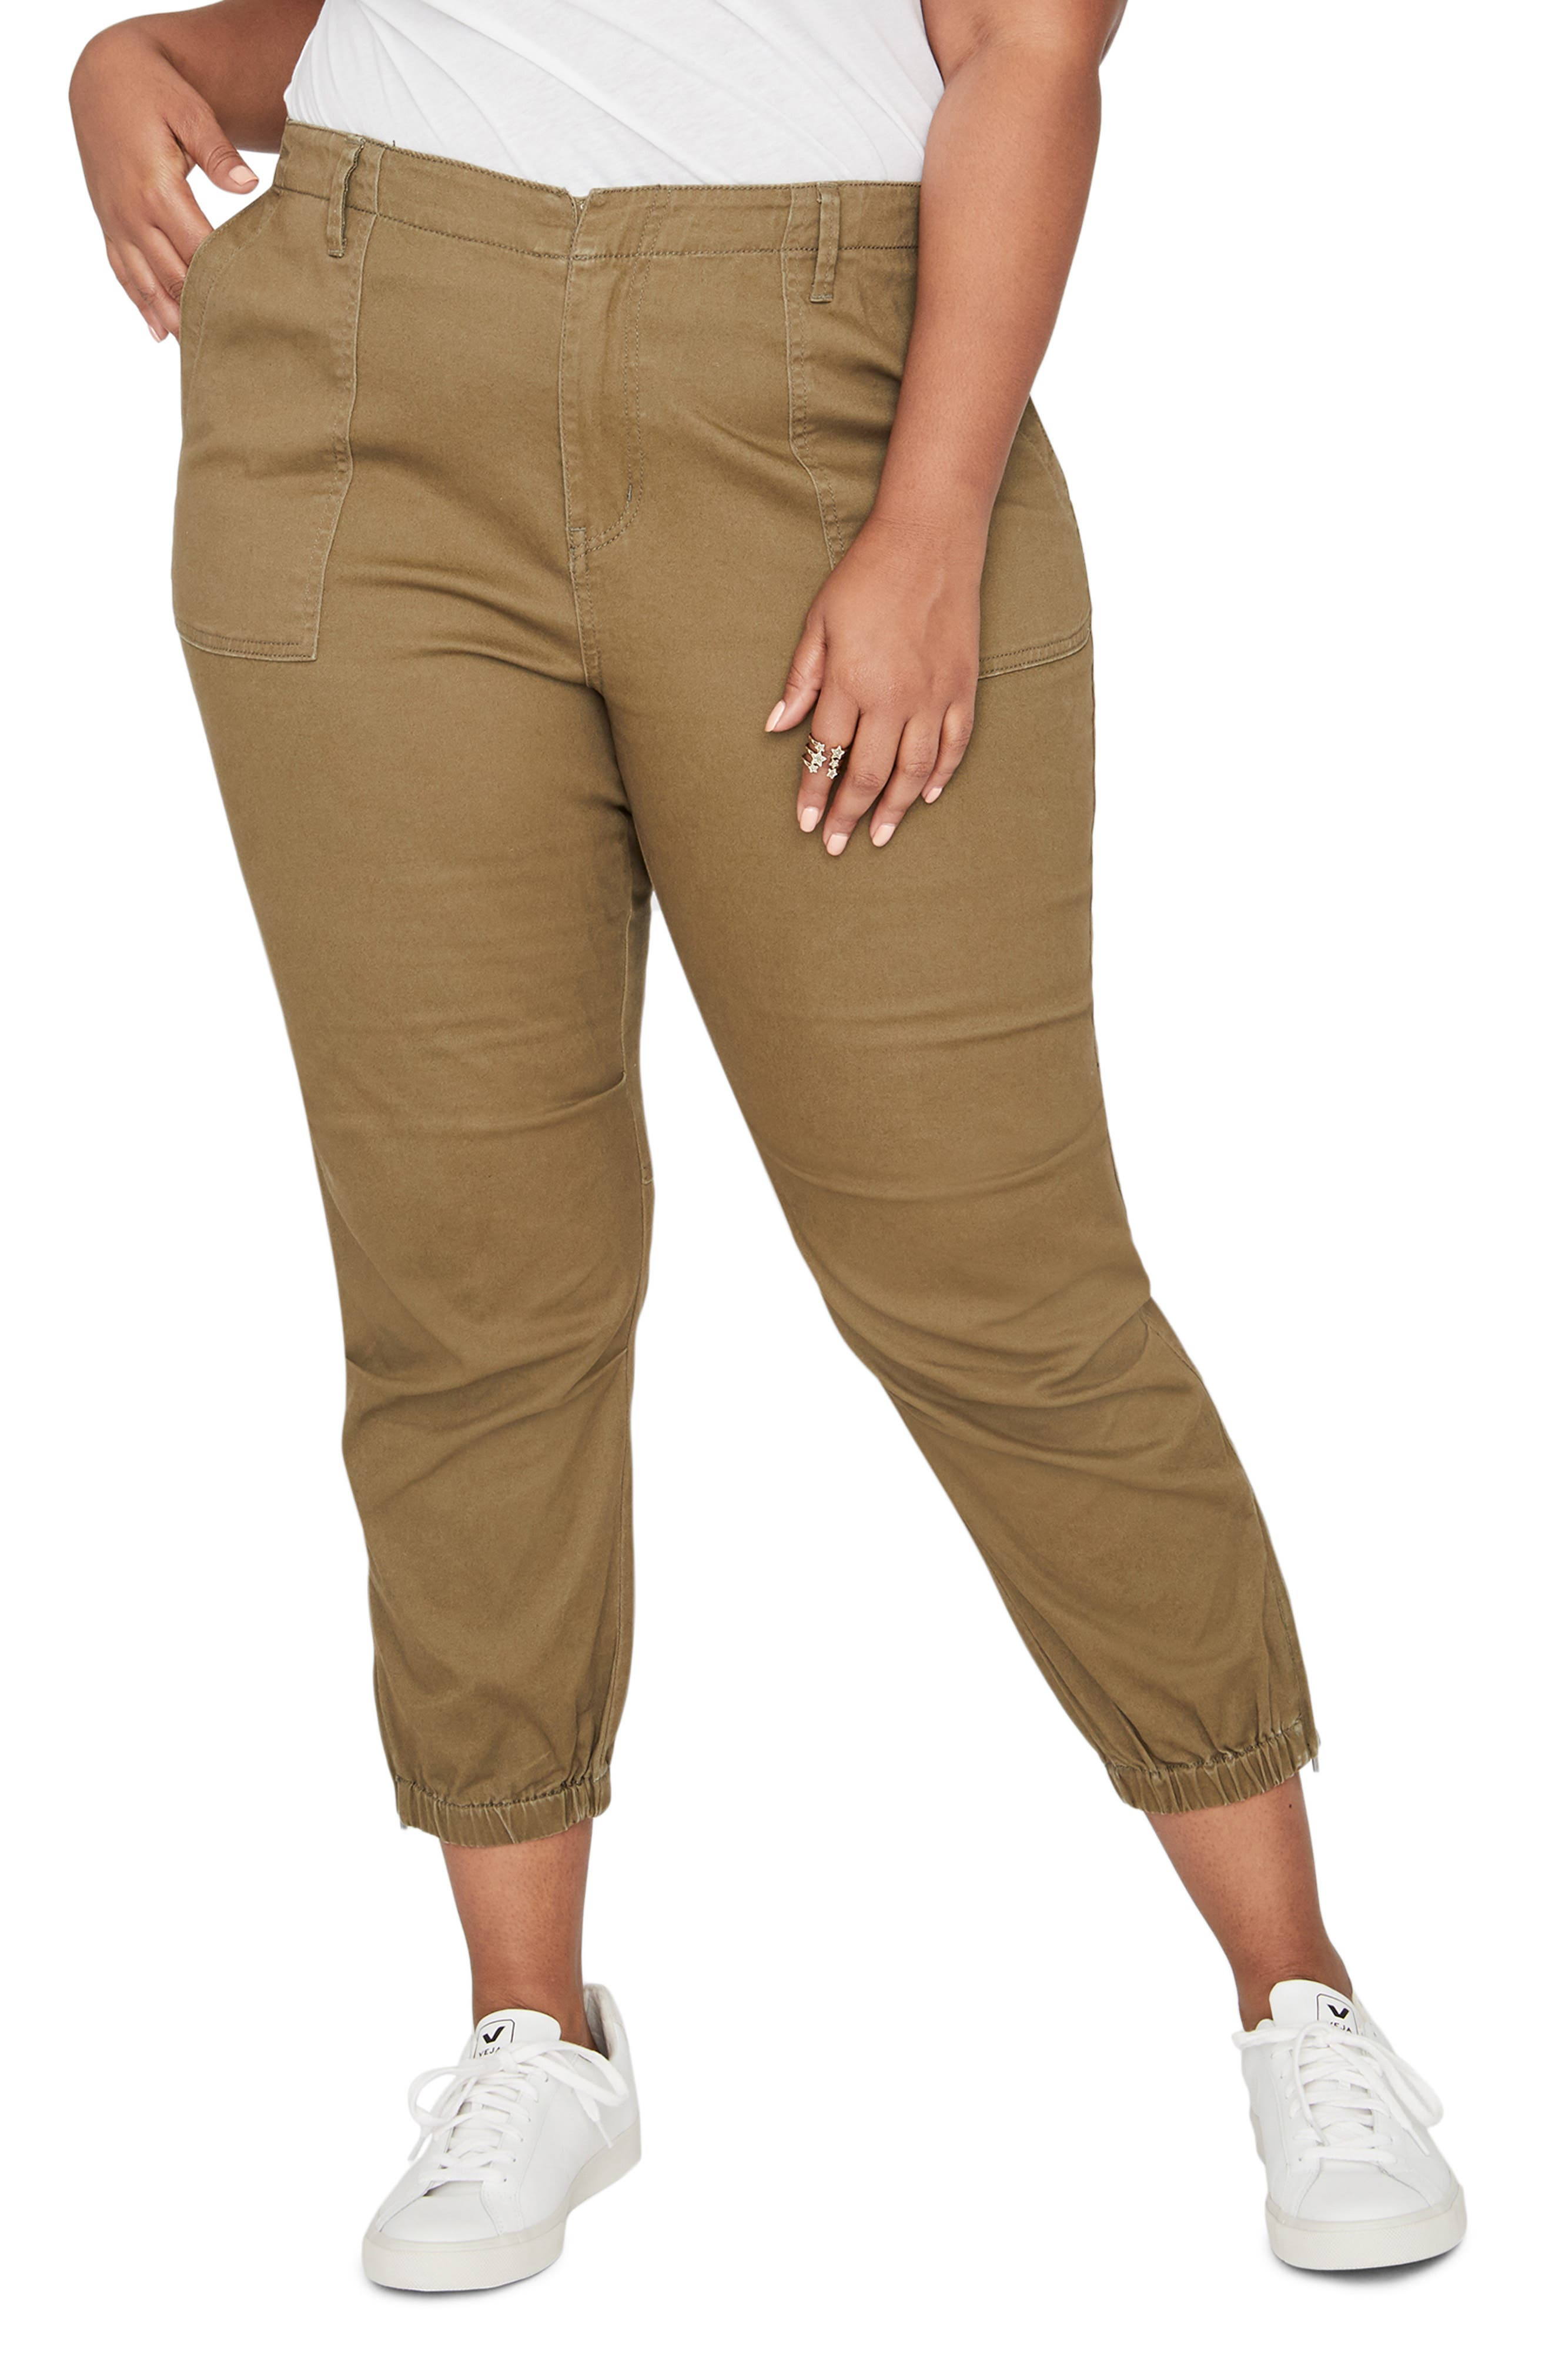 Army High Rise Crop Military Pants,                             Main thumbnail 1, color,                             312